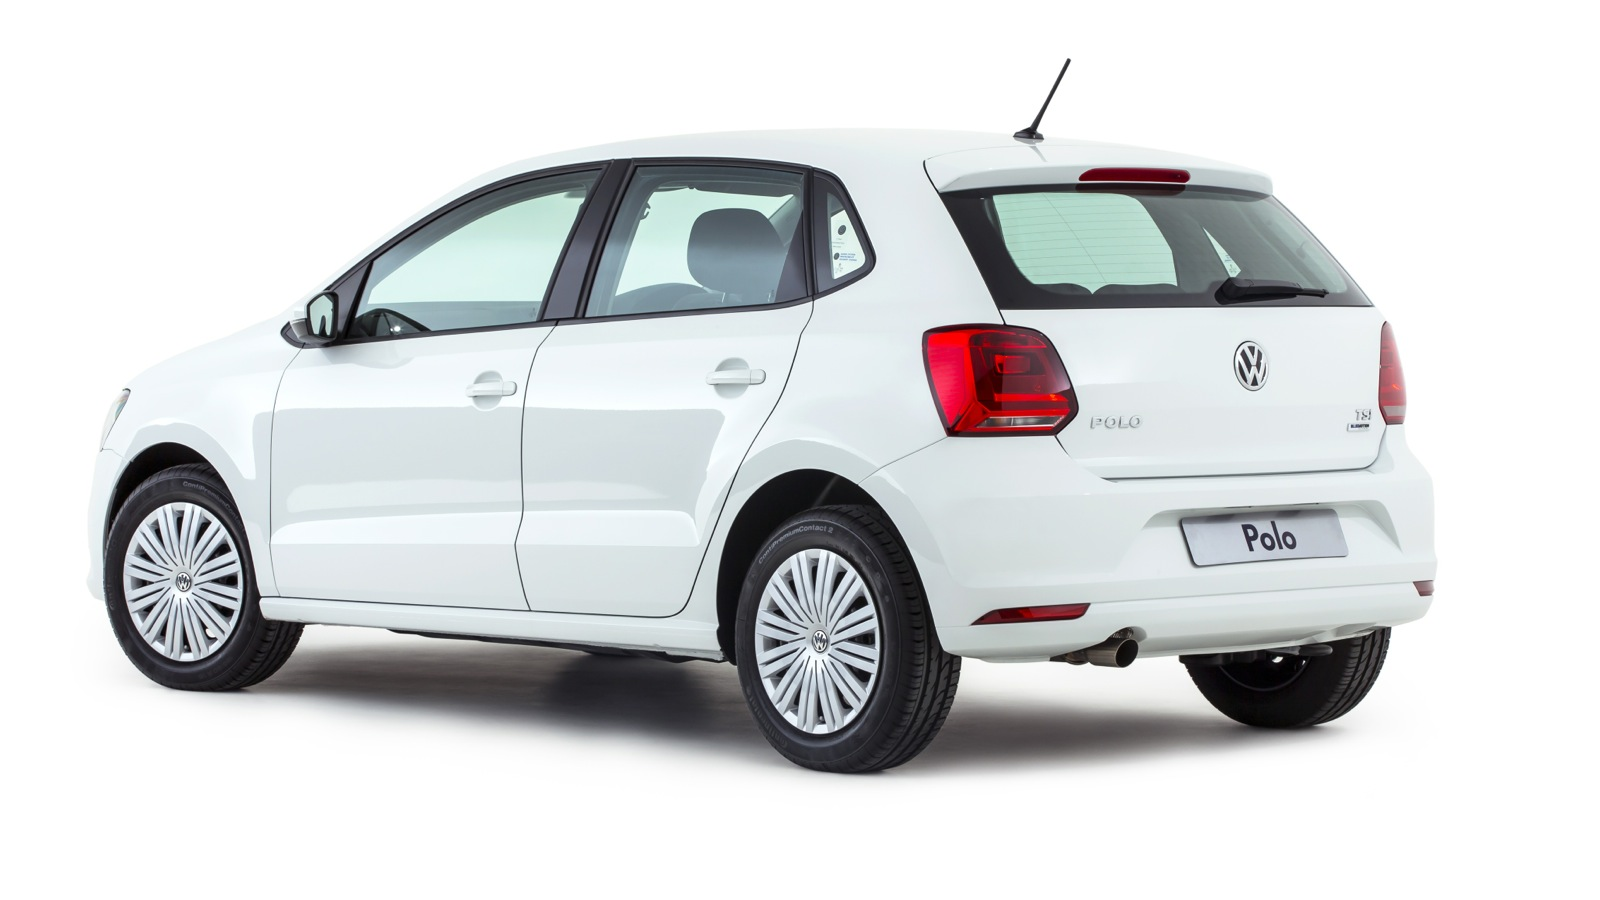 2015 Volkswagen Polo : Pricing and specifications - UPDATED with driveaway prices - photos ...